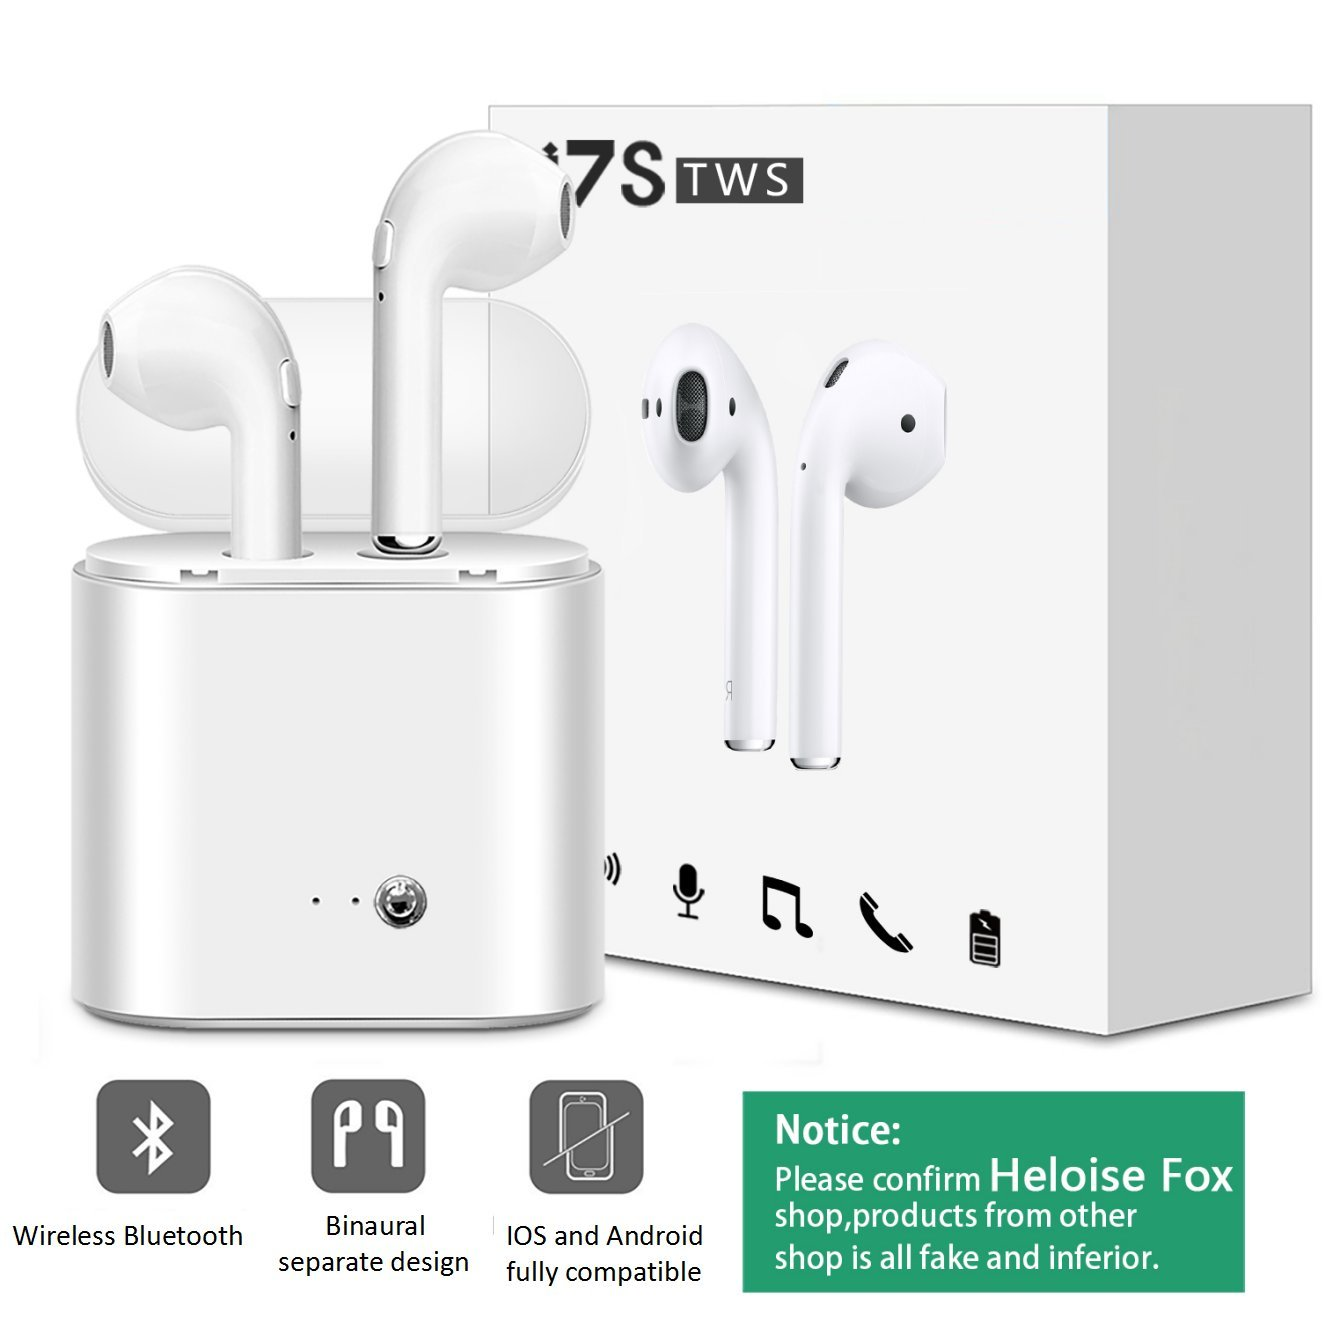 Bluetooth Earbuds, Wireless in-Ear Headphones Hands Free with Portable Charger for iPhone X, 8, 8plus, 7, 7 Plus, 6s, Samsung Galaxy, iOS, Android Smart Phones